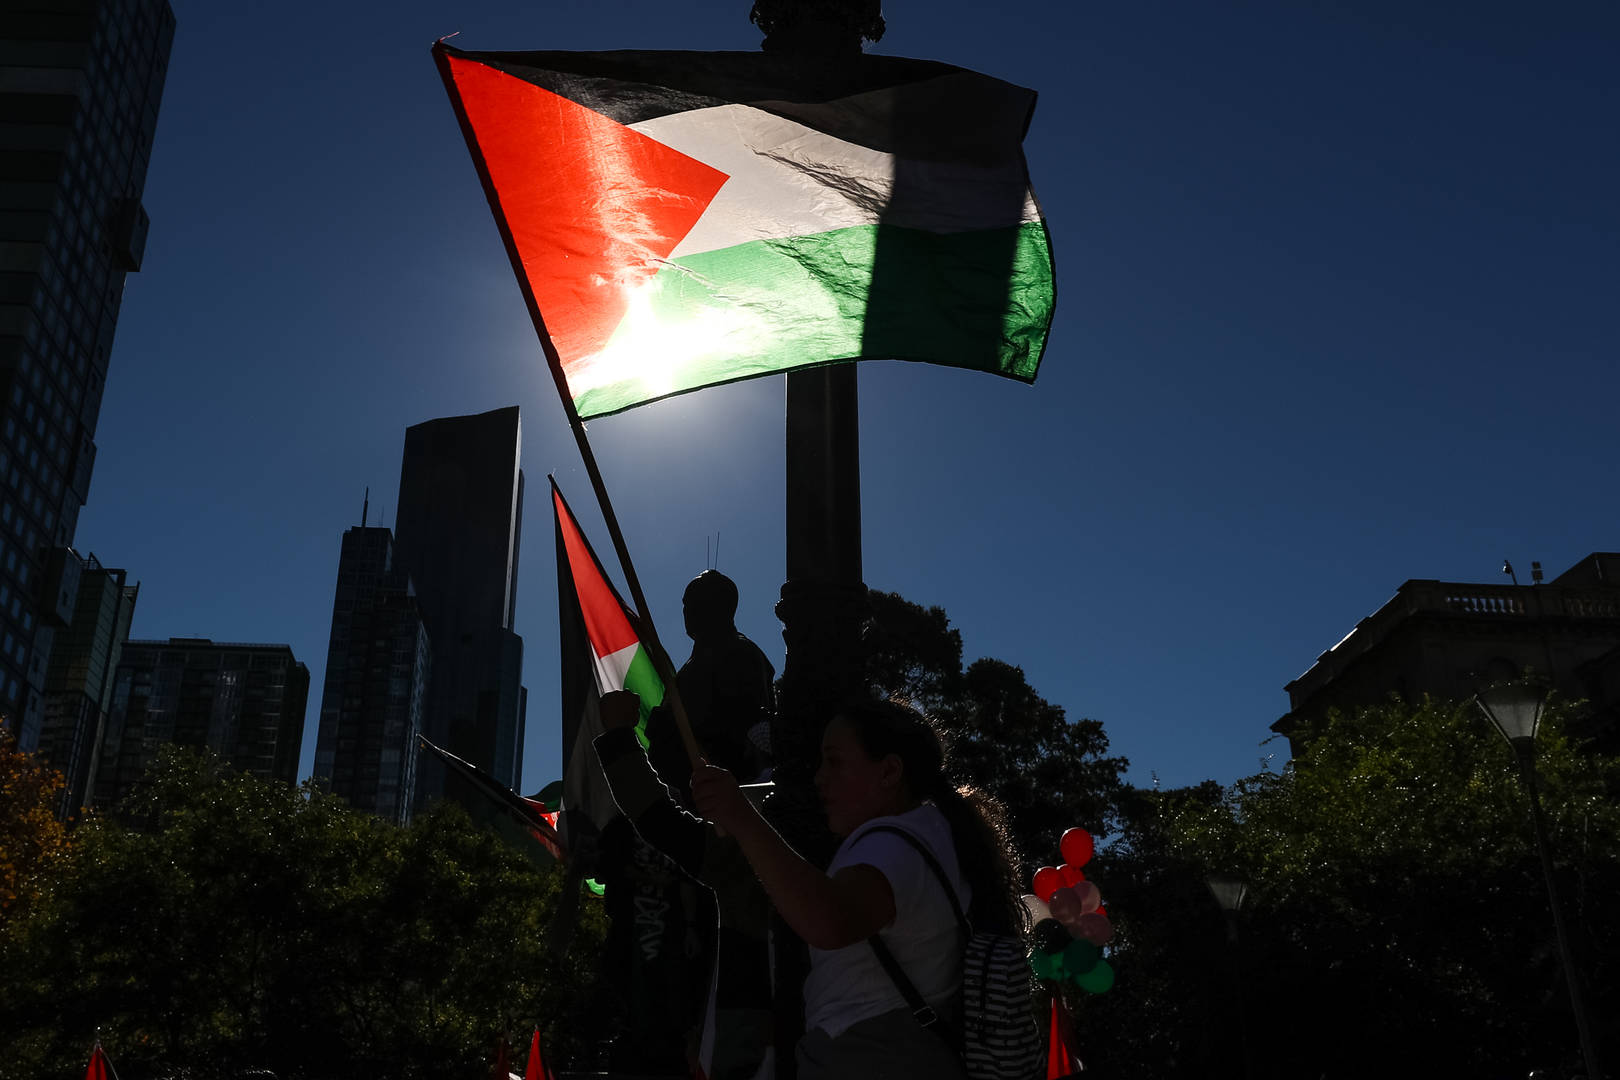 A Palestinian flag is waved during a Rally on May 22, 2021 in Melbourne, Australia. Rallies were organised across Australia to protest against the recent violence in Israel and the Gaza strip. A ceasefire between Israel and Hamas in Gaza started on Friday, following 11 days of rocket attacks.